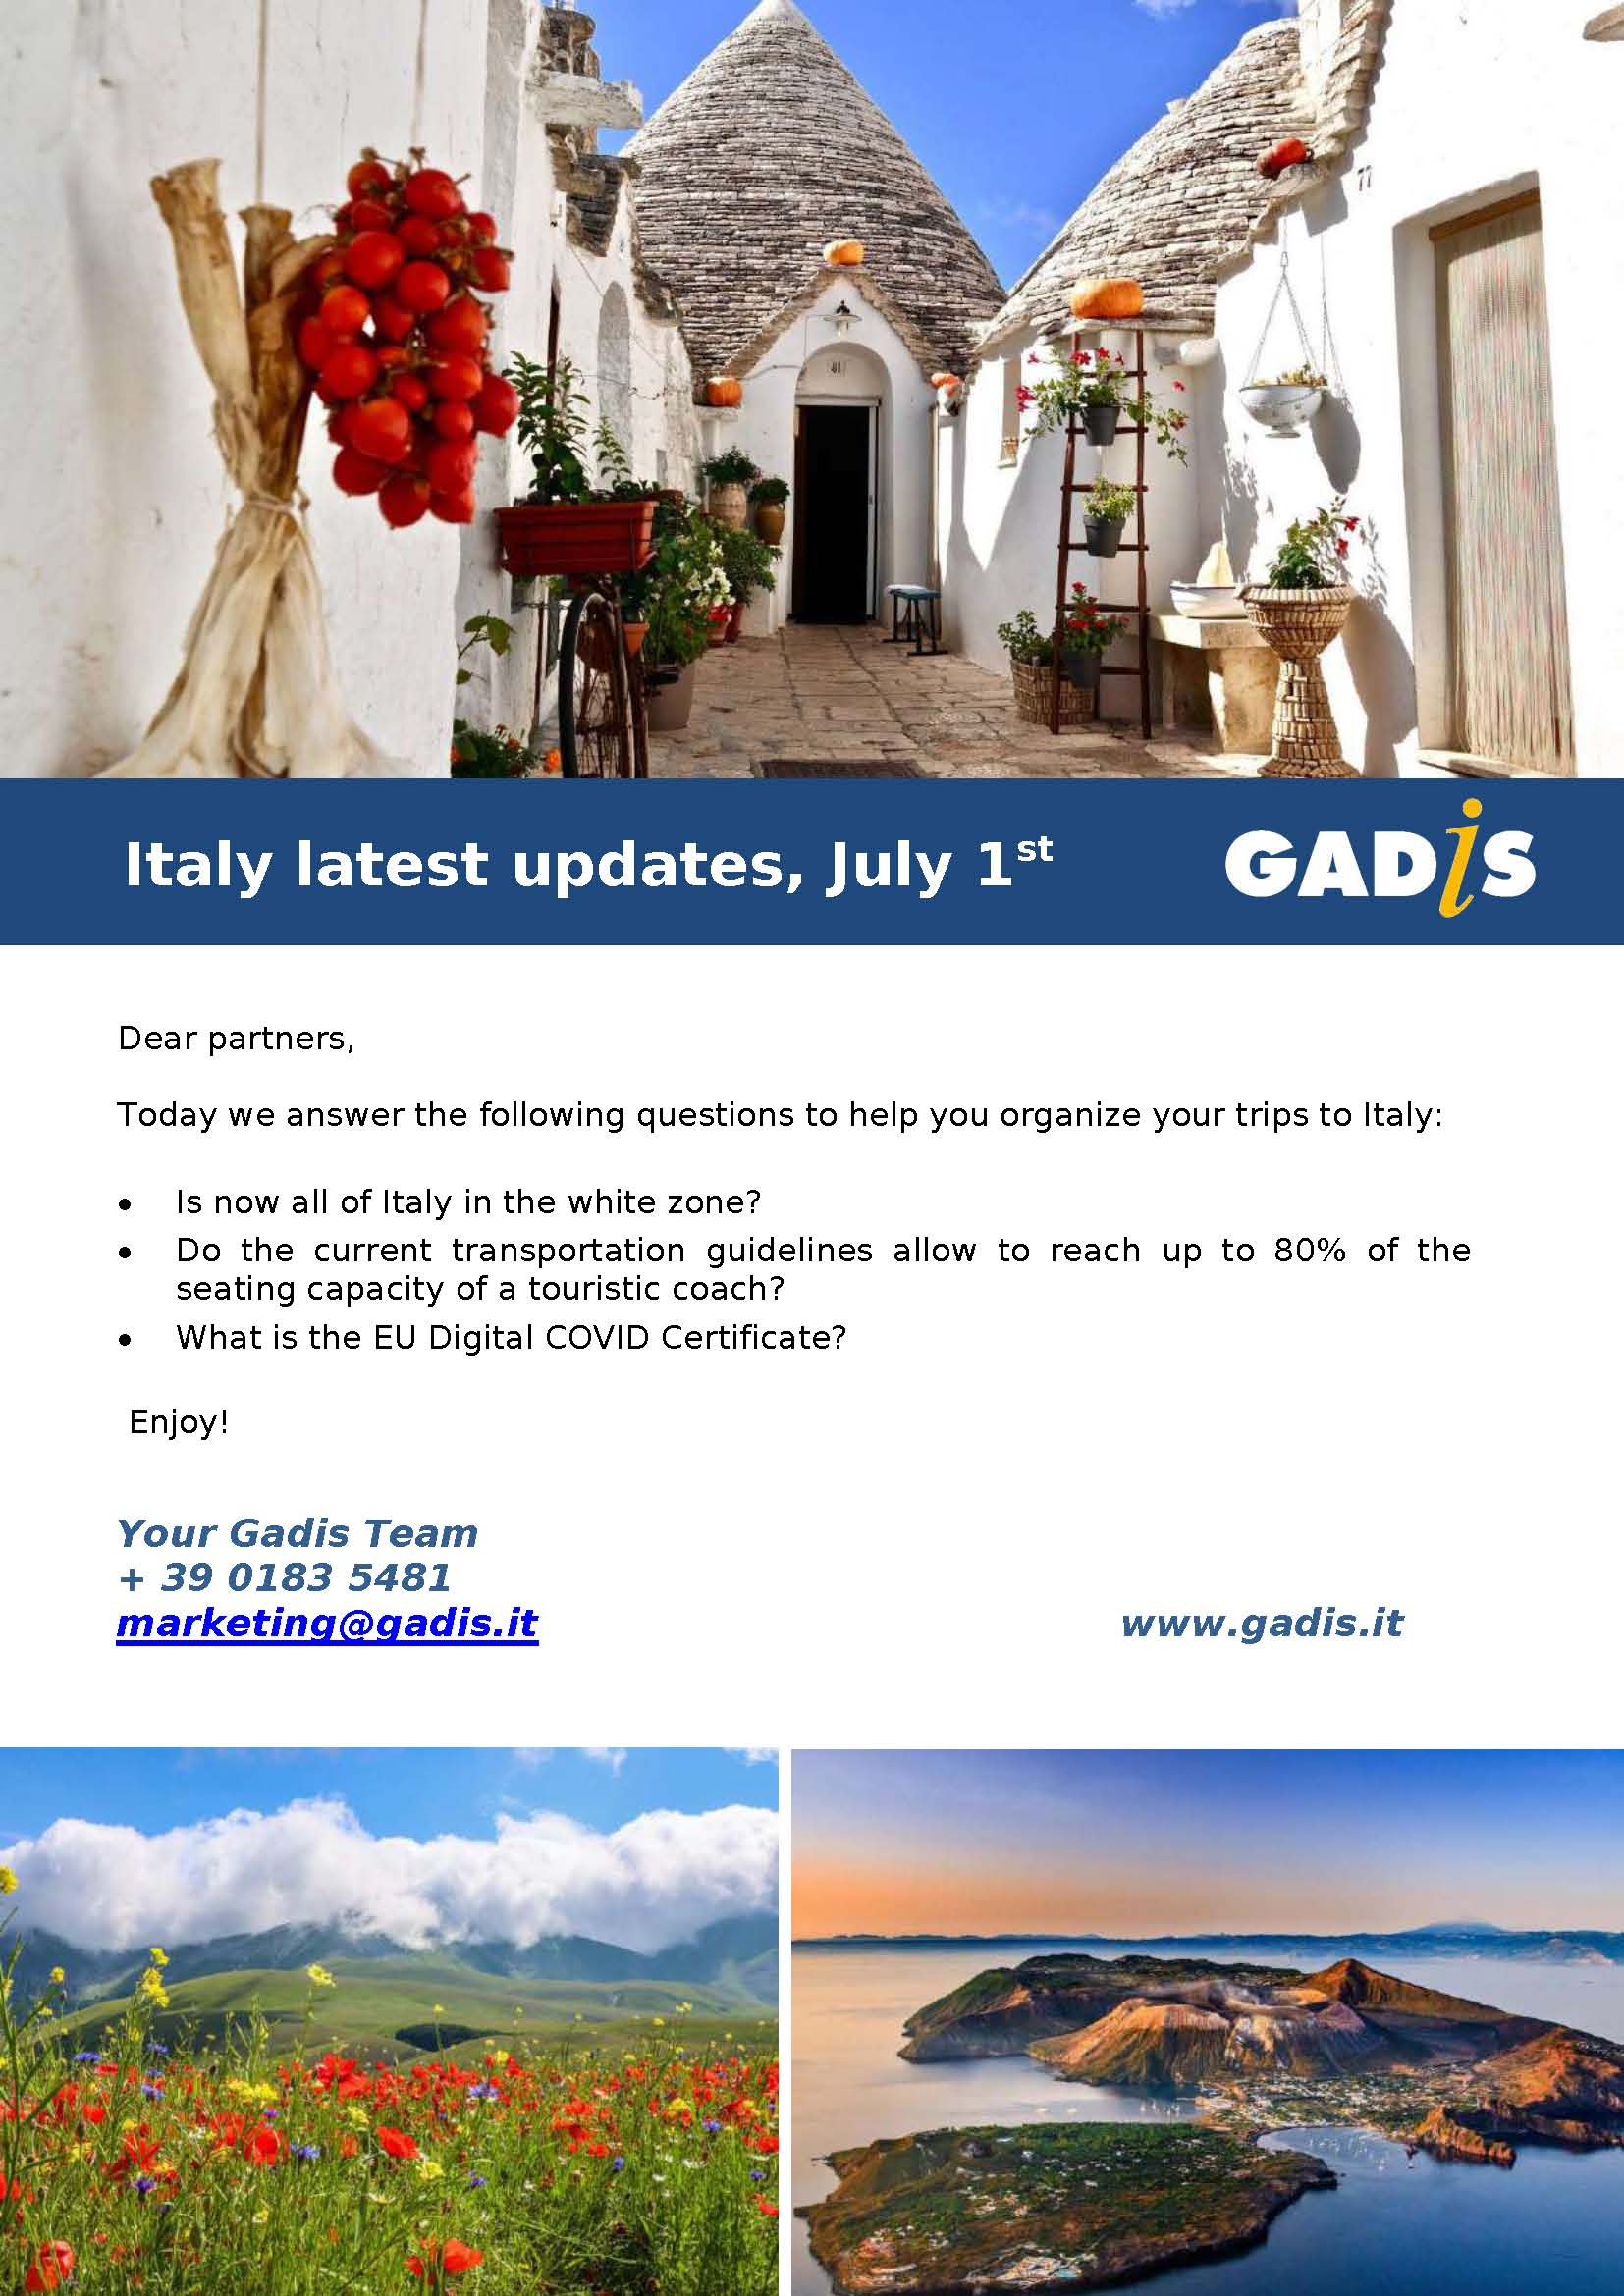 Italy updates July 2021